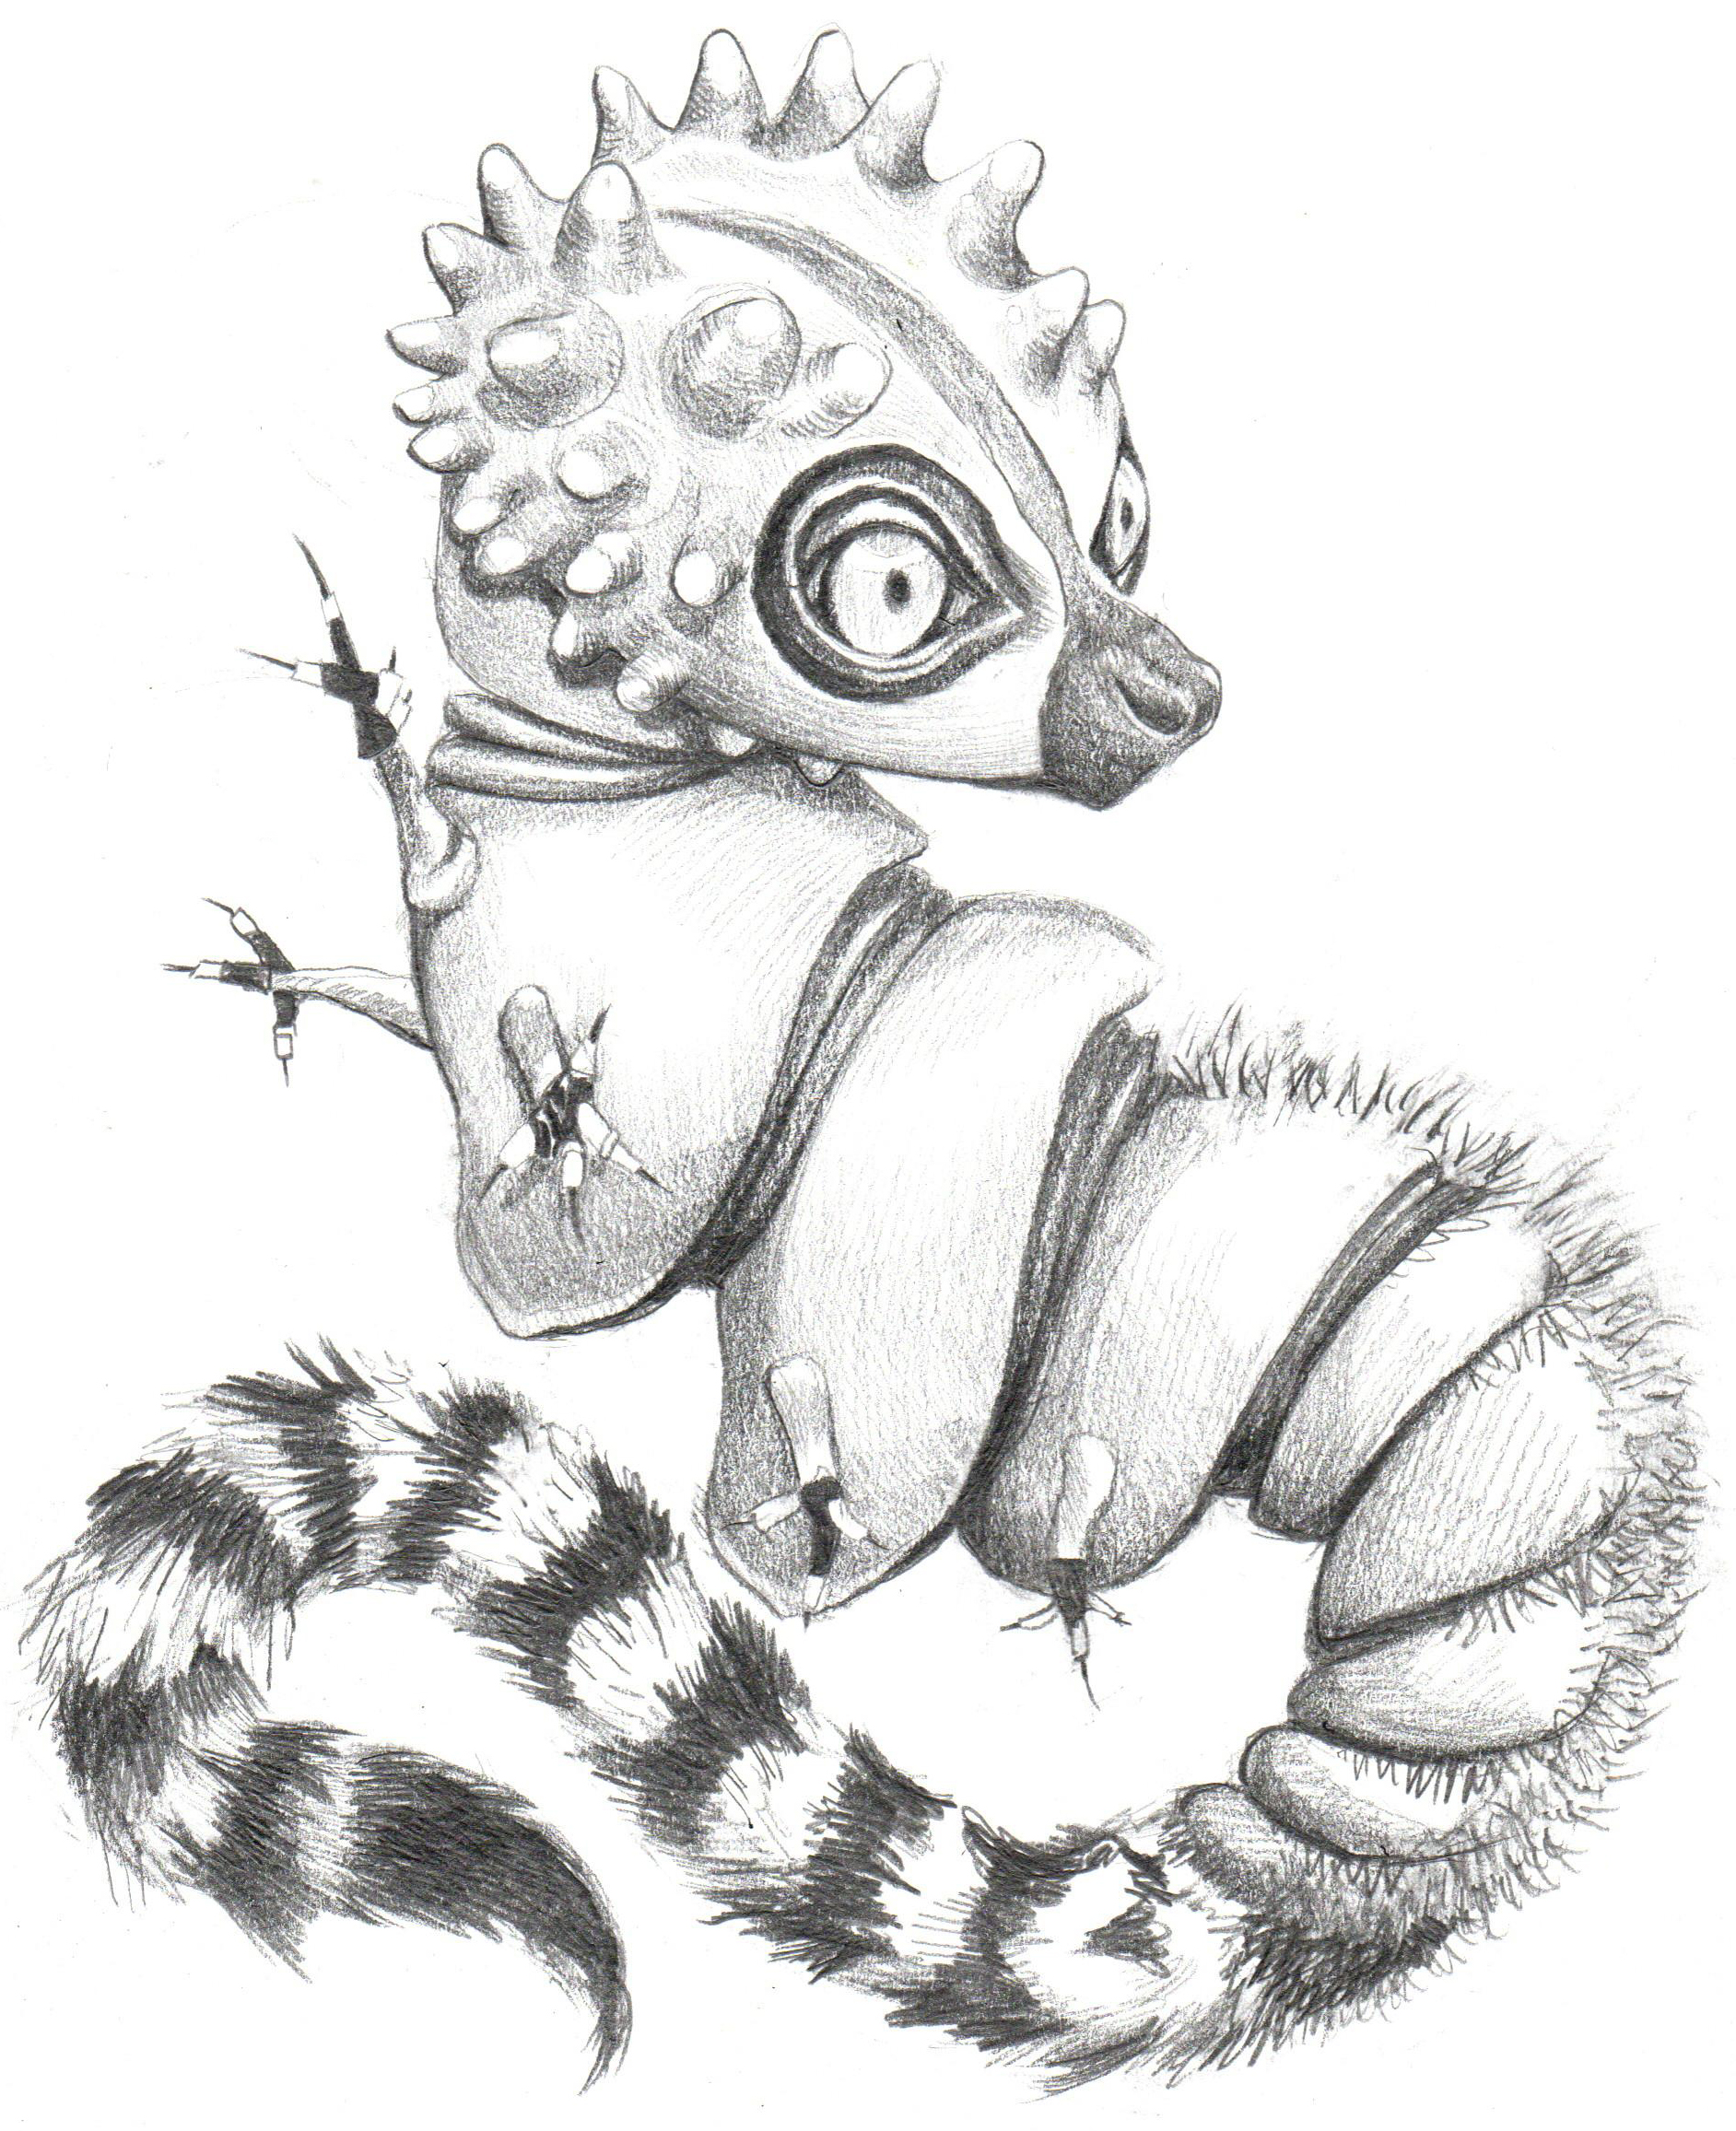 Abomidorables, lemur, caterpillar, animal mash up, Nicole Little blog, Nicole Little art, fusion beast, fusion beasts